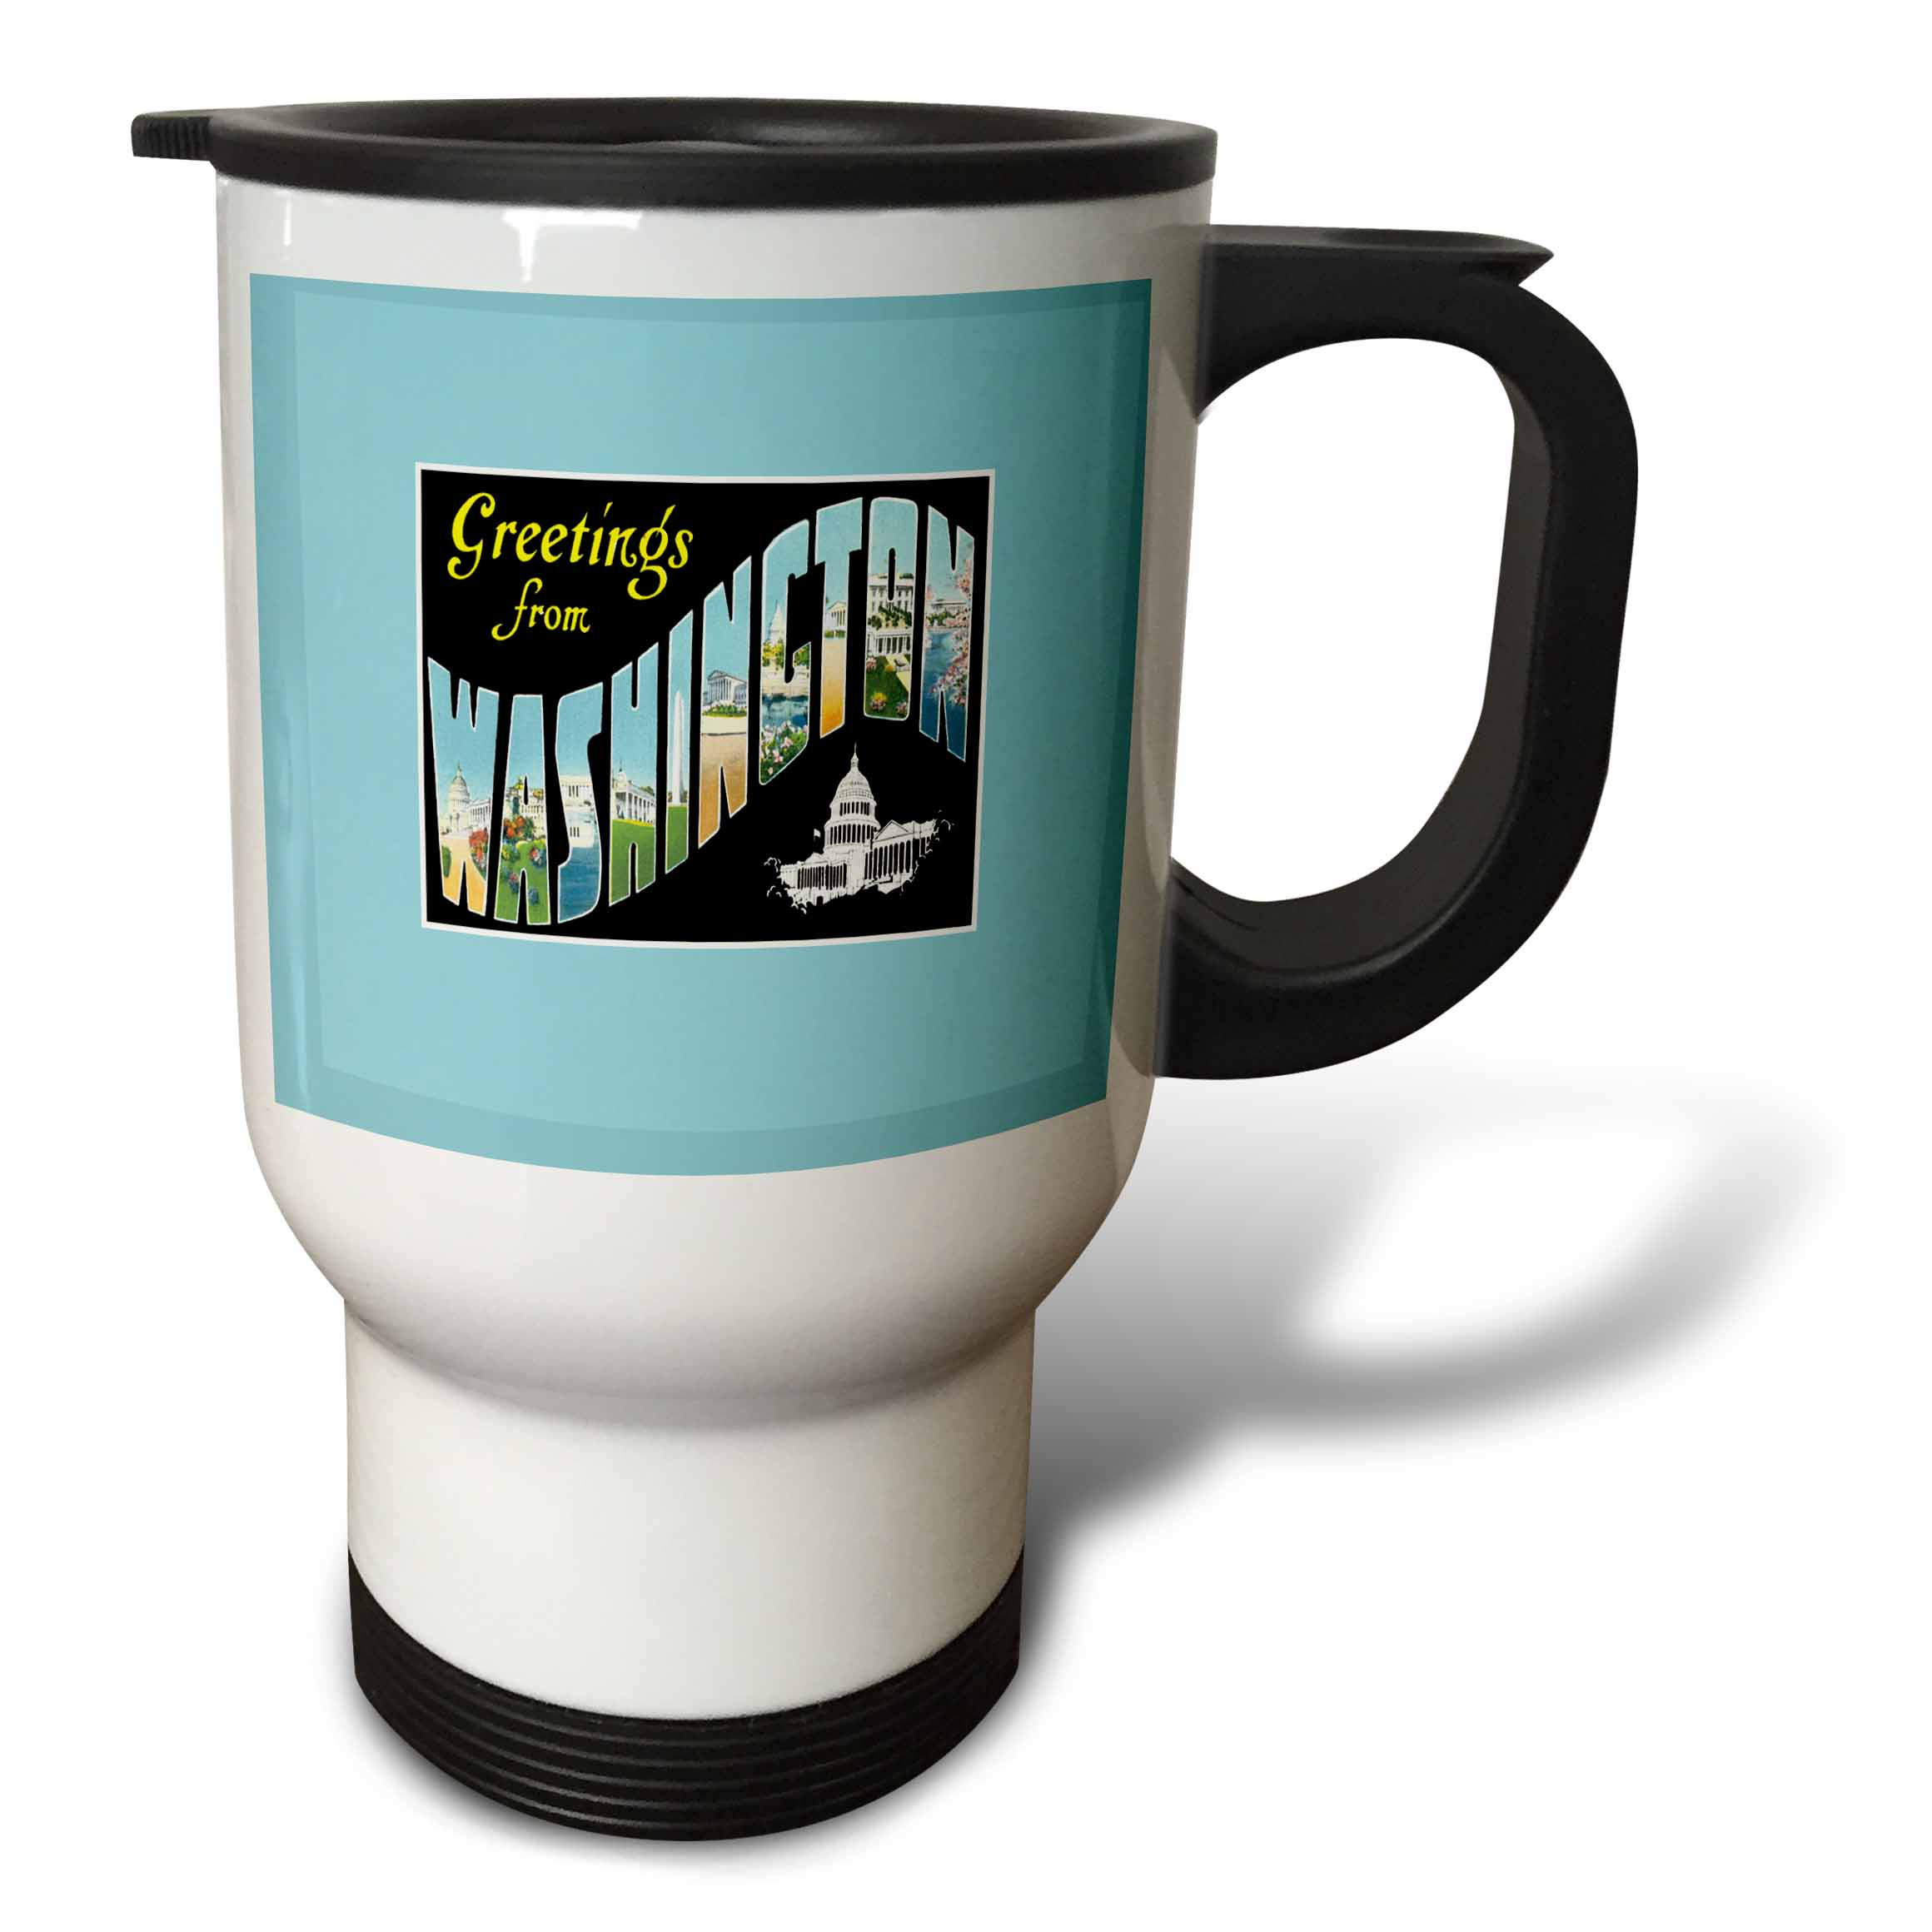 3dRose Greetings from Washington DC Scenic Postcard Reproduction, Travel Mug, 14oz, Stainless Steel